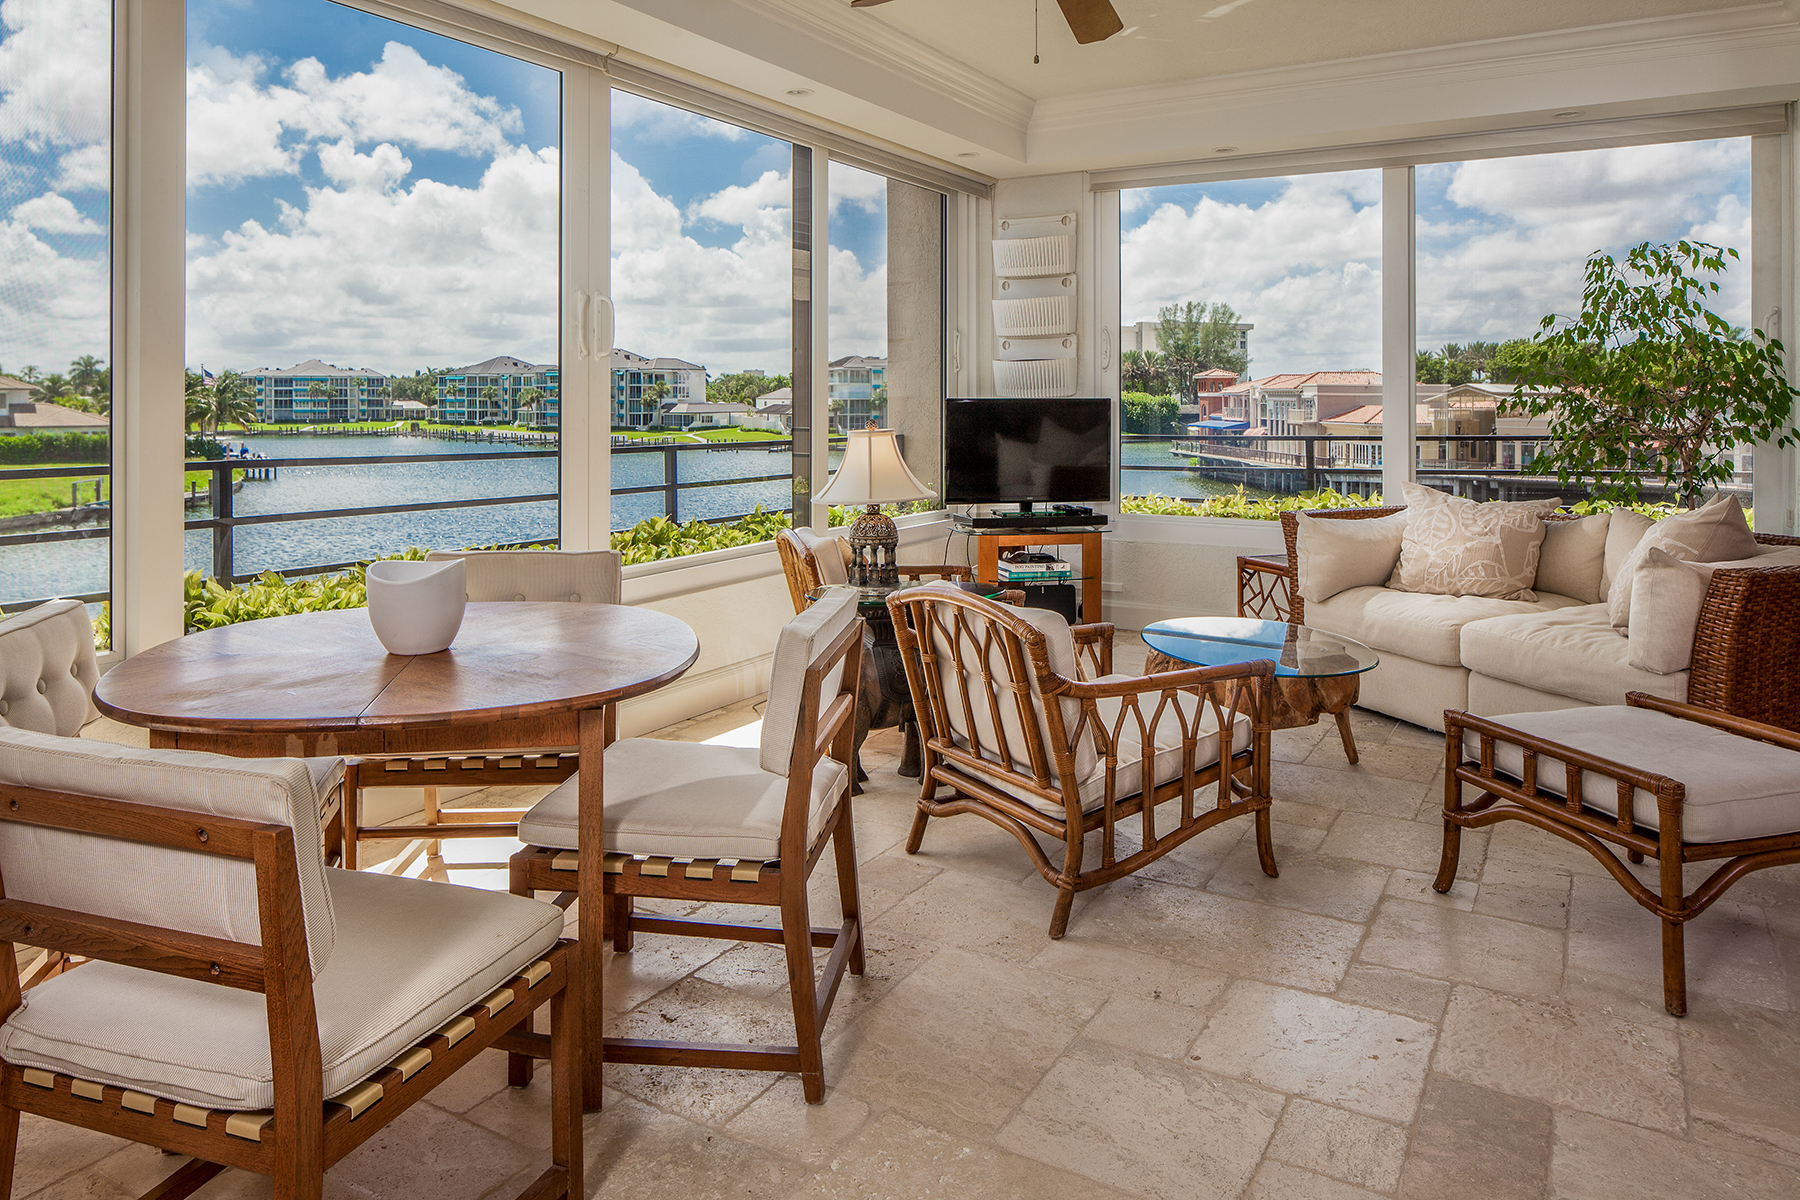 Condominium for Sale at PARK SHORE ARDISSON 4400 Gulf Shore Blvd N 2-204, Naples, Florida 34103 United States